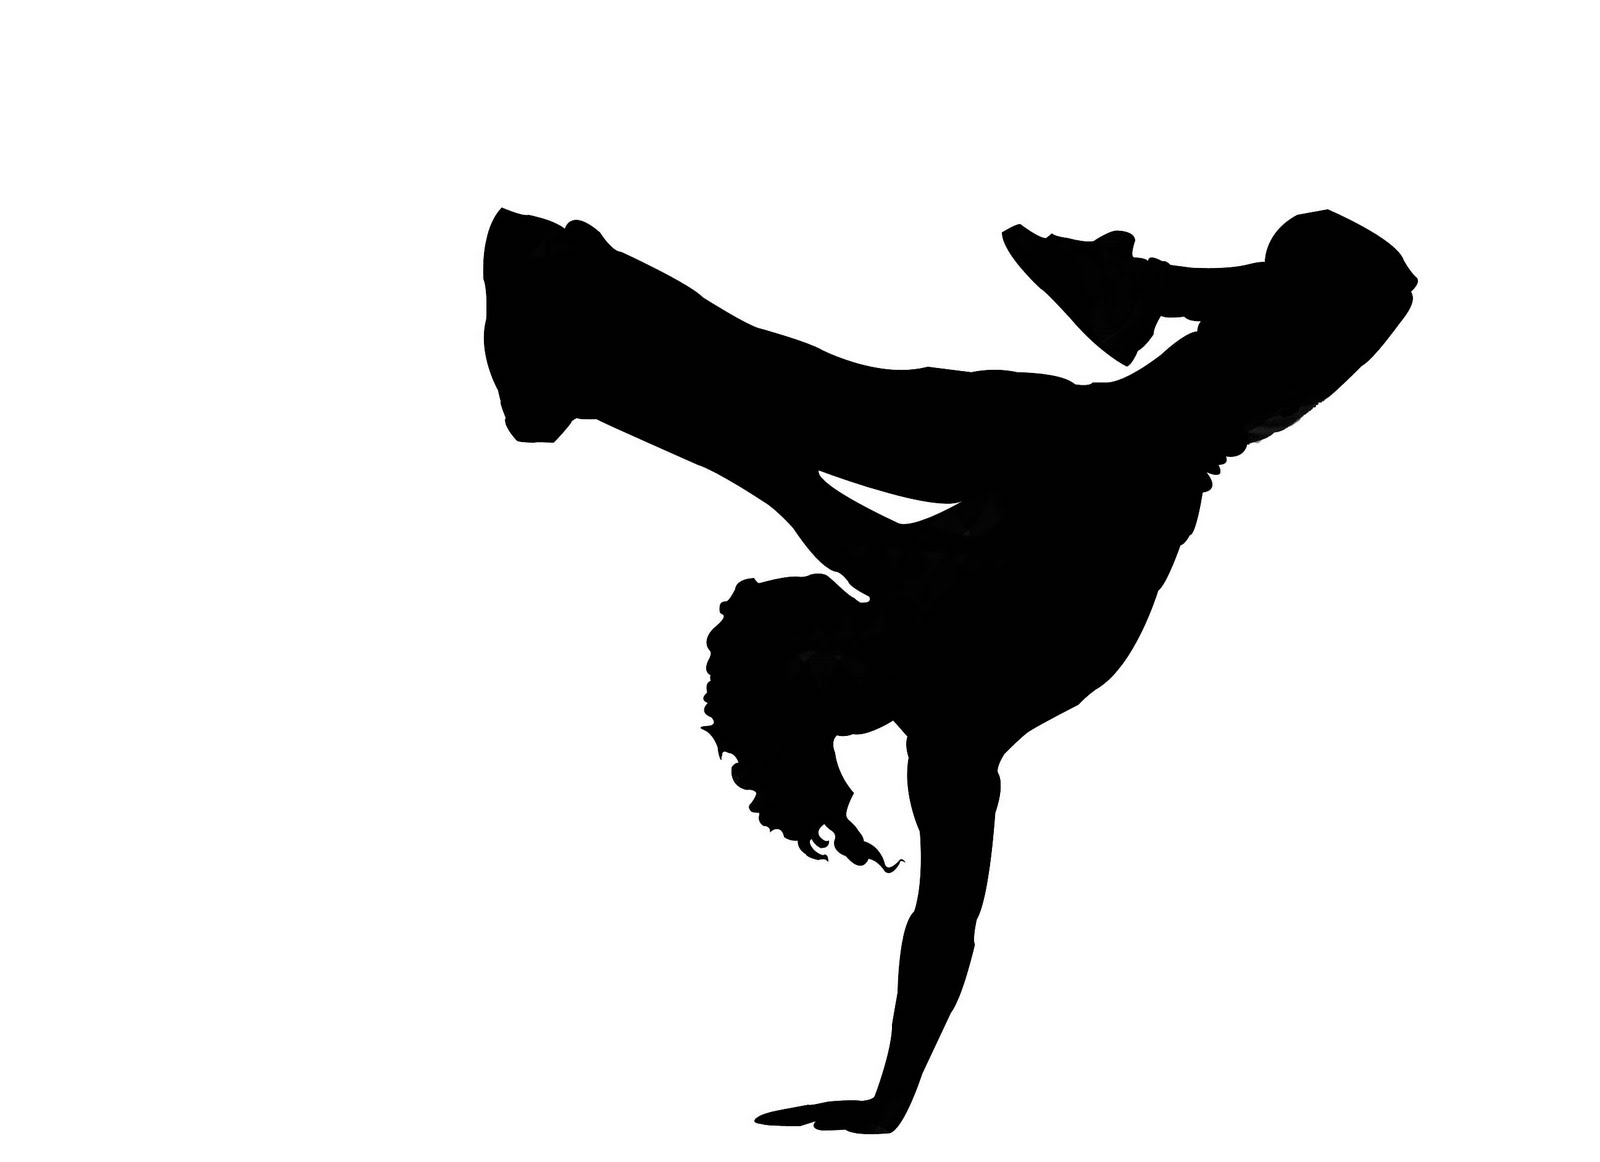 Intro to Computer Graphics: Breakdancer's Silhouette